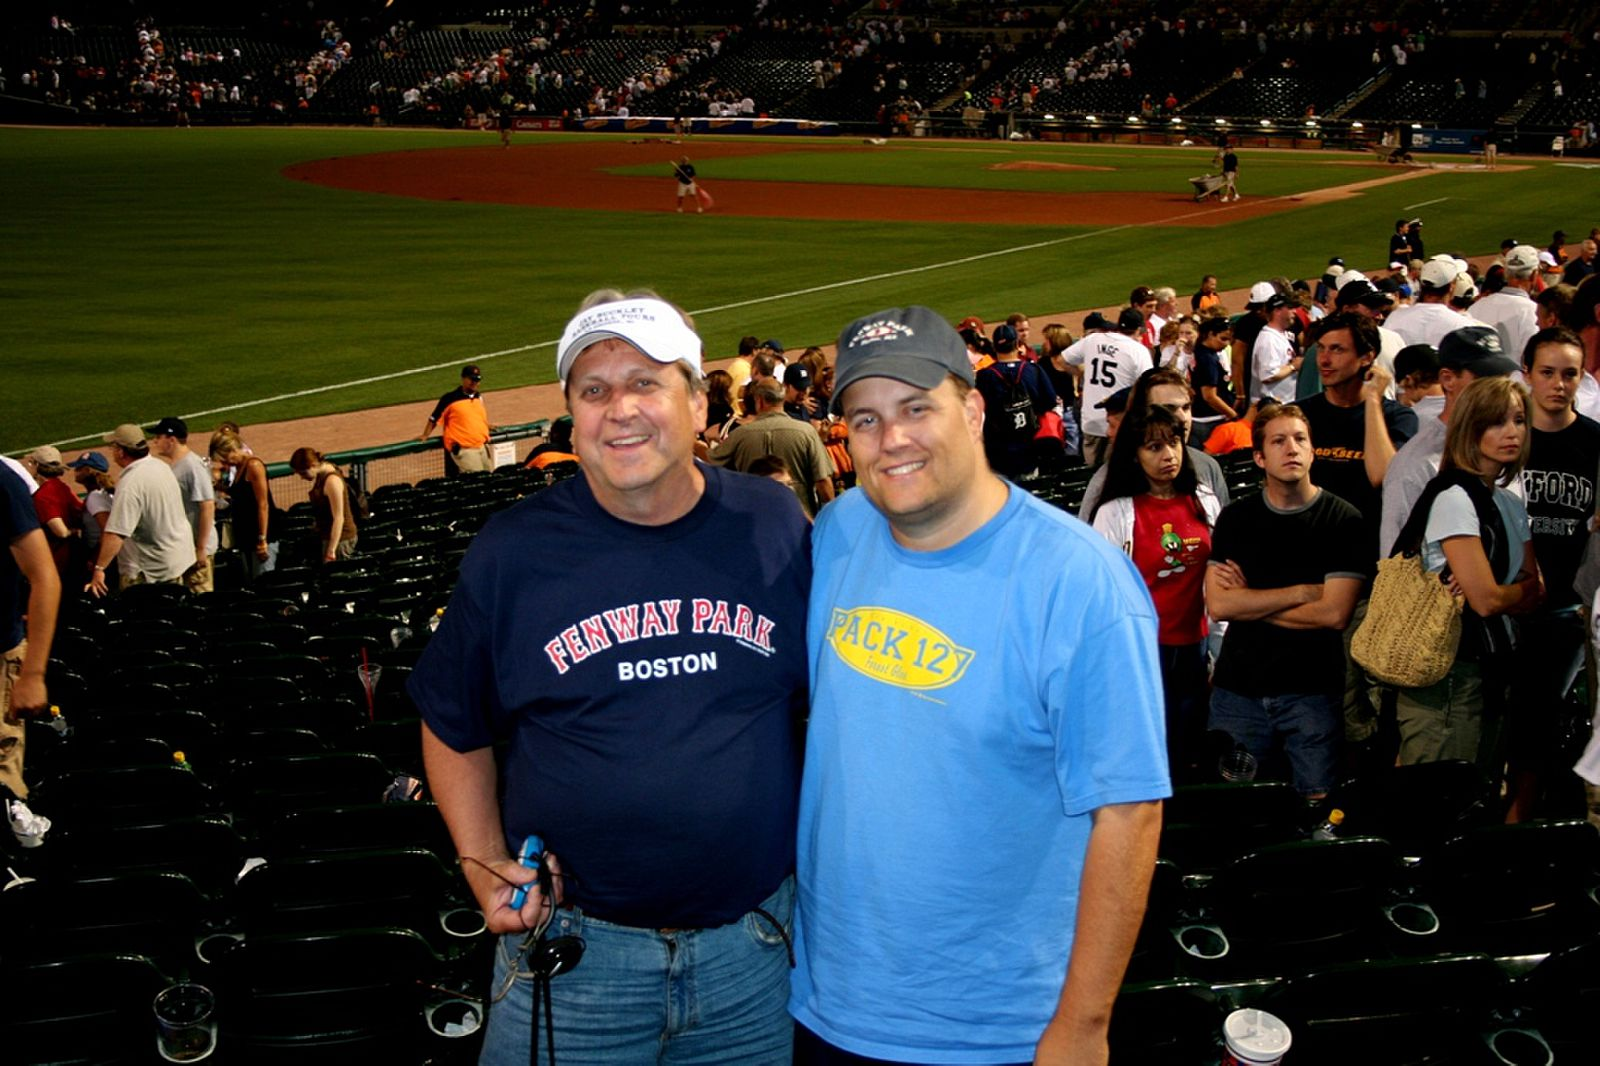 Dad and I at Comerica Park